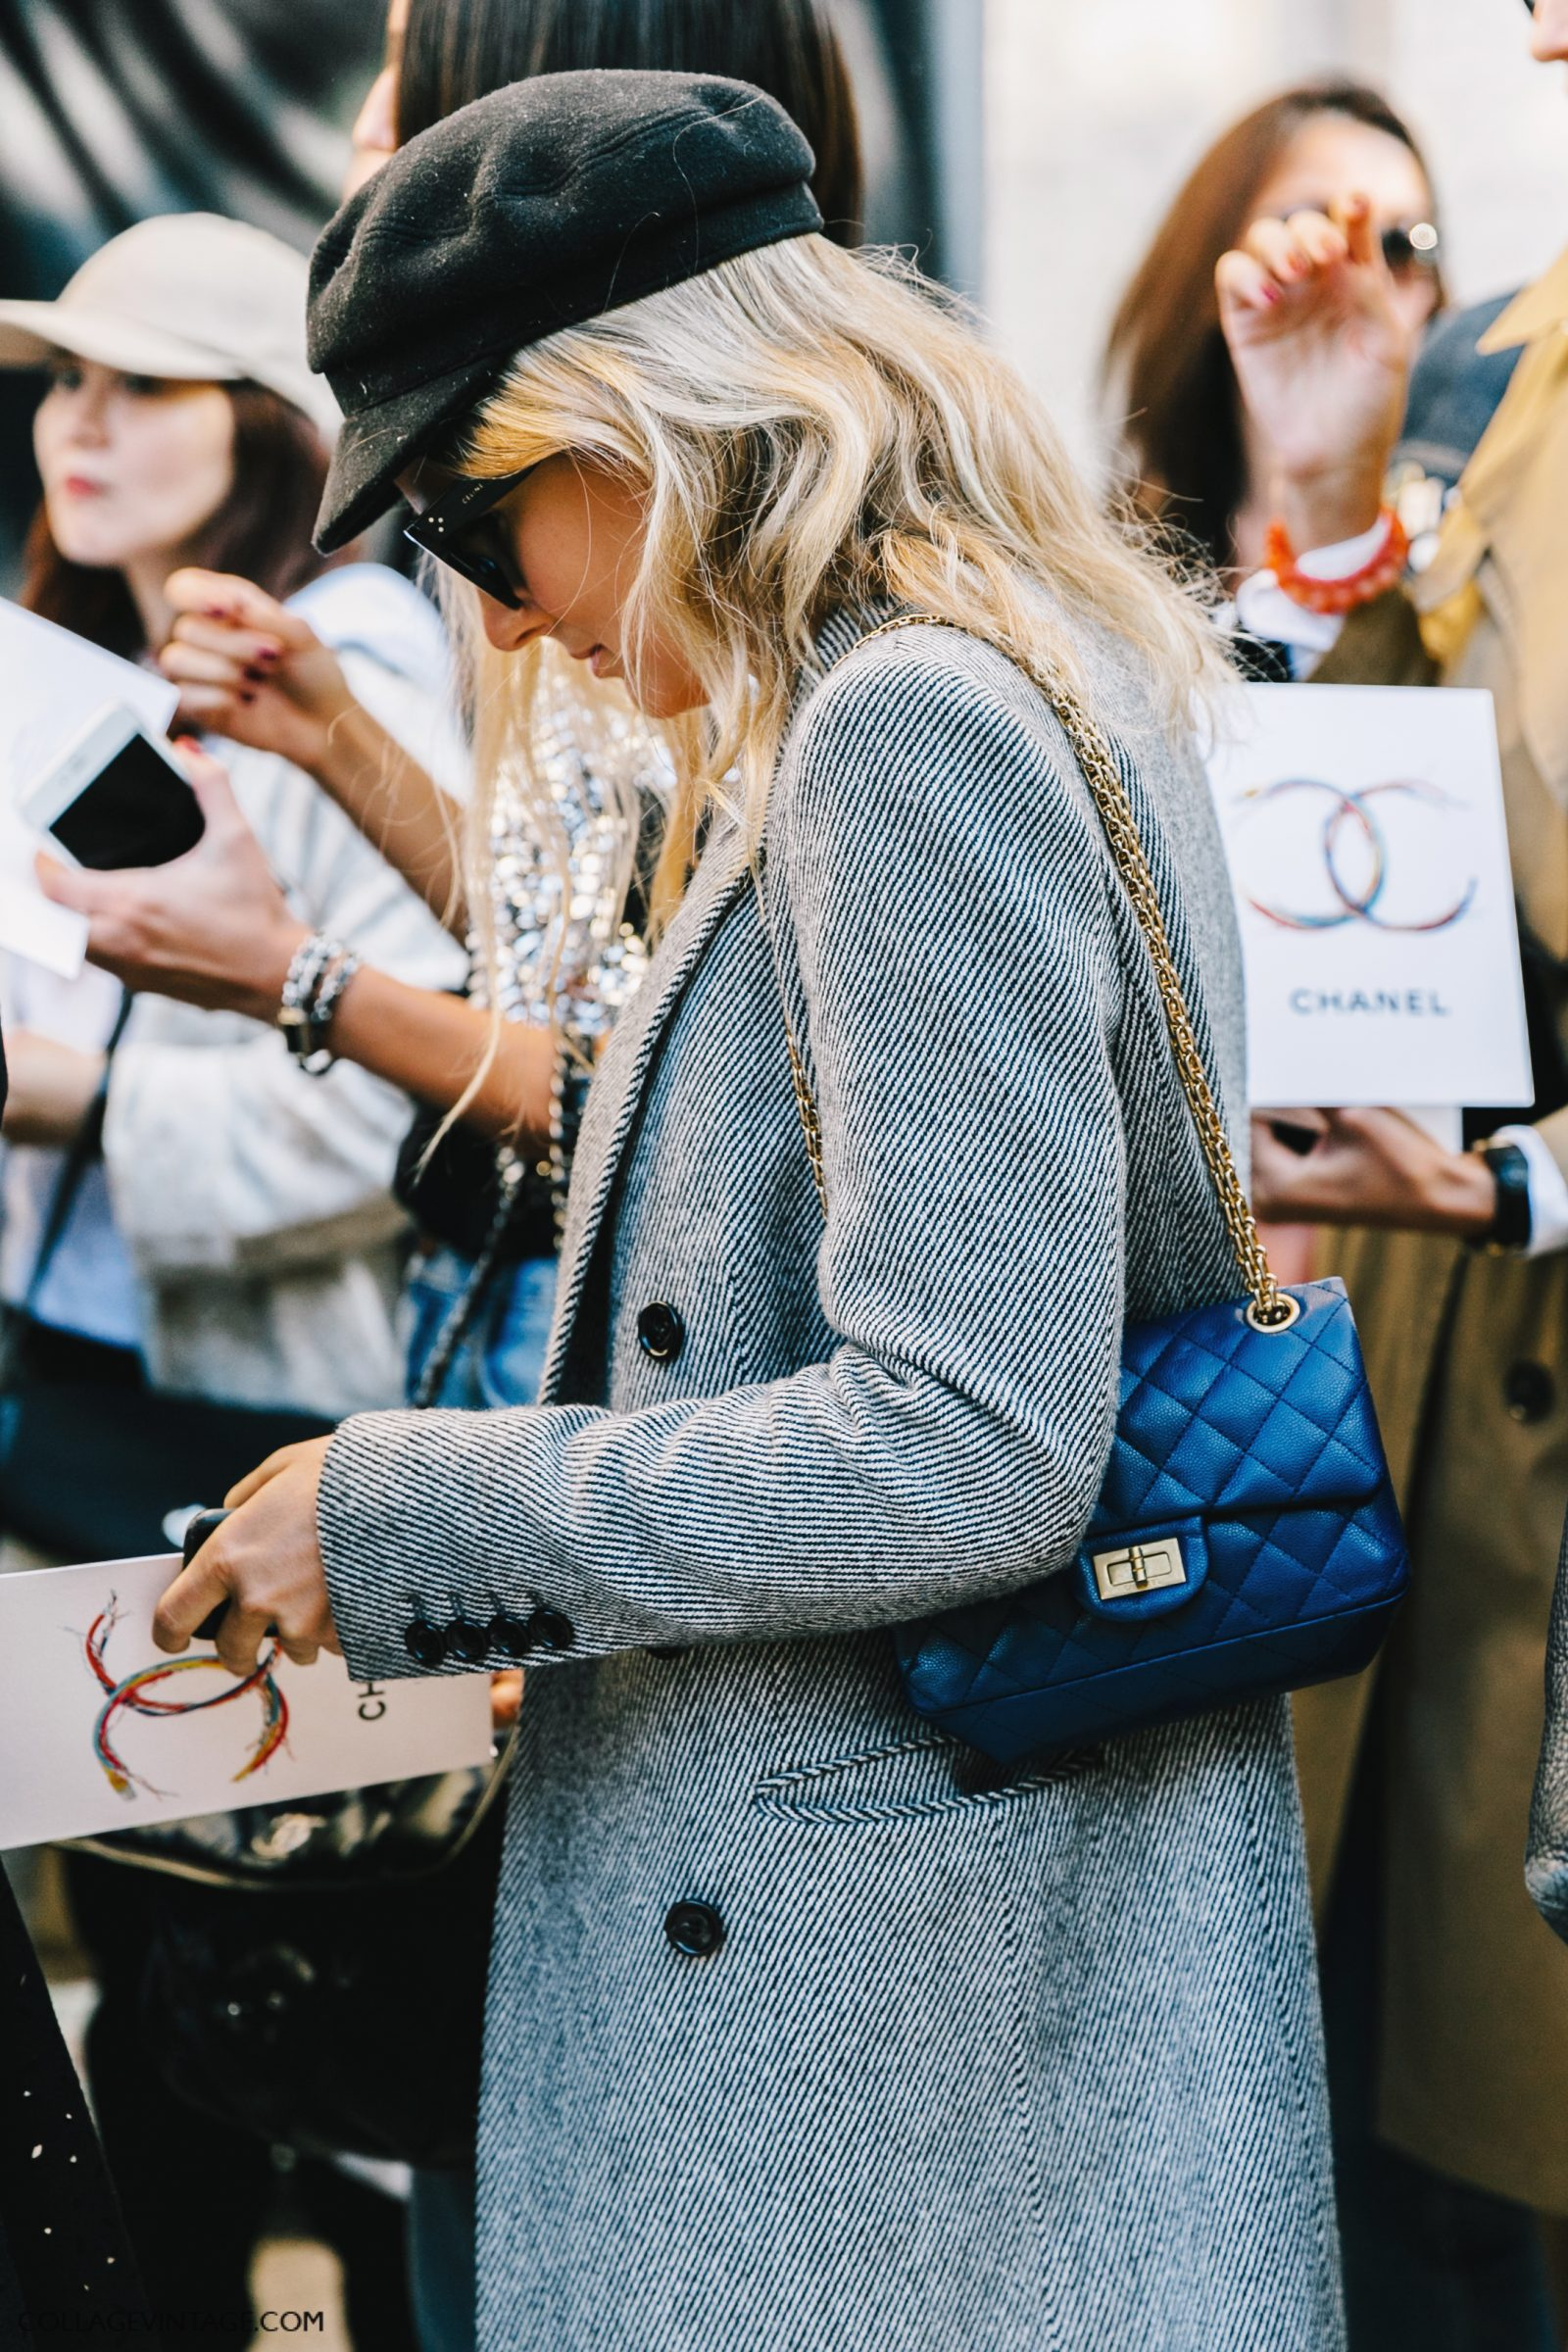 pfw-paris_fashion_week_ss17-street_style-outfits-collage_vintage-chanel-ellery-7